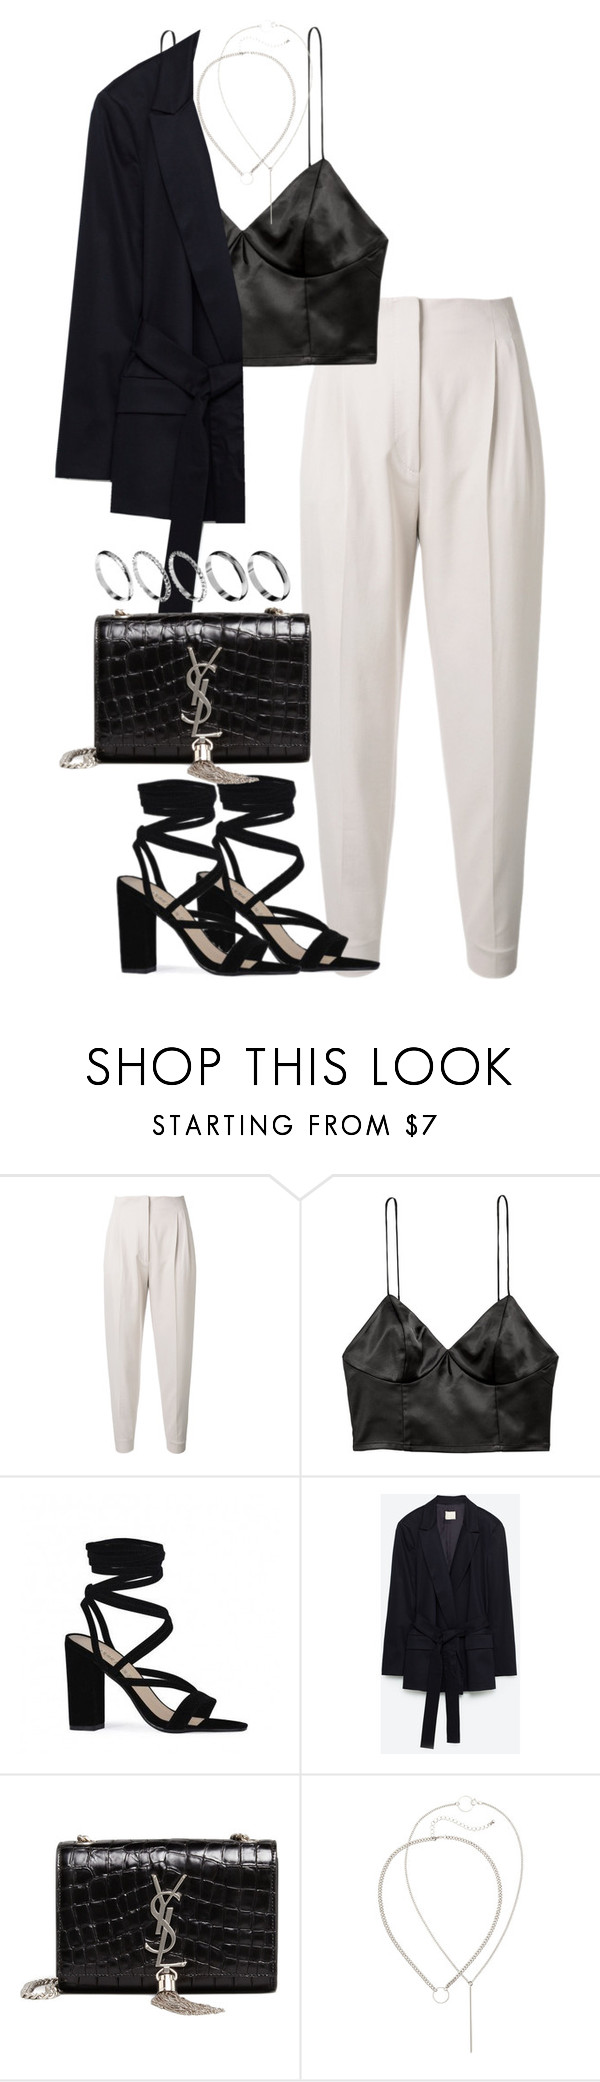 """""""Untitled #3757"""" by theeuropeancloset ❤ liked on Polyvore featuring MaxMara, H&M, Public Desire, Yves Saint Laurent and ASOS"""